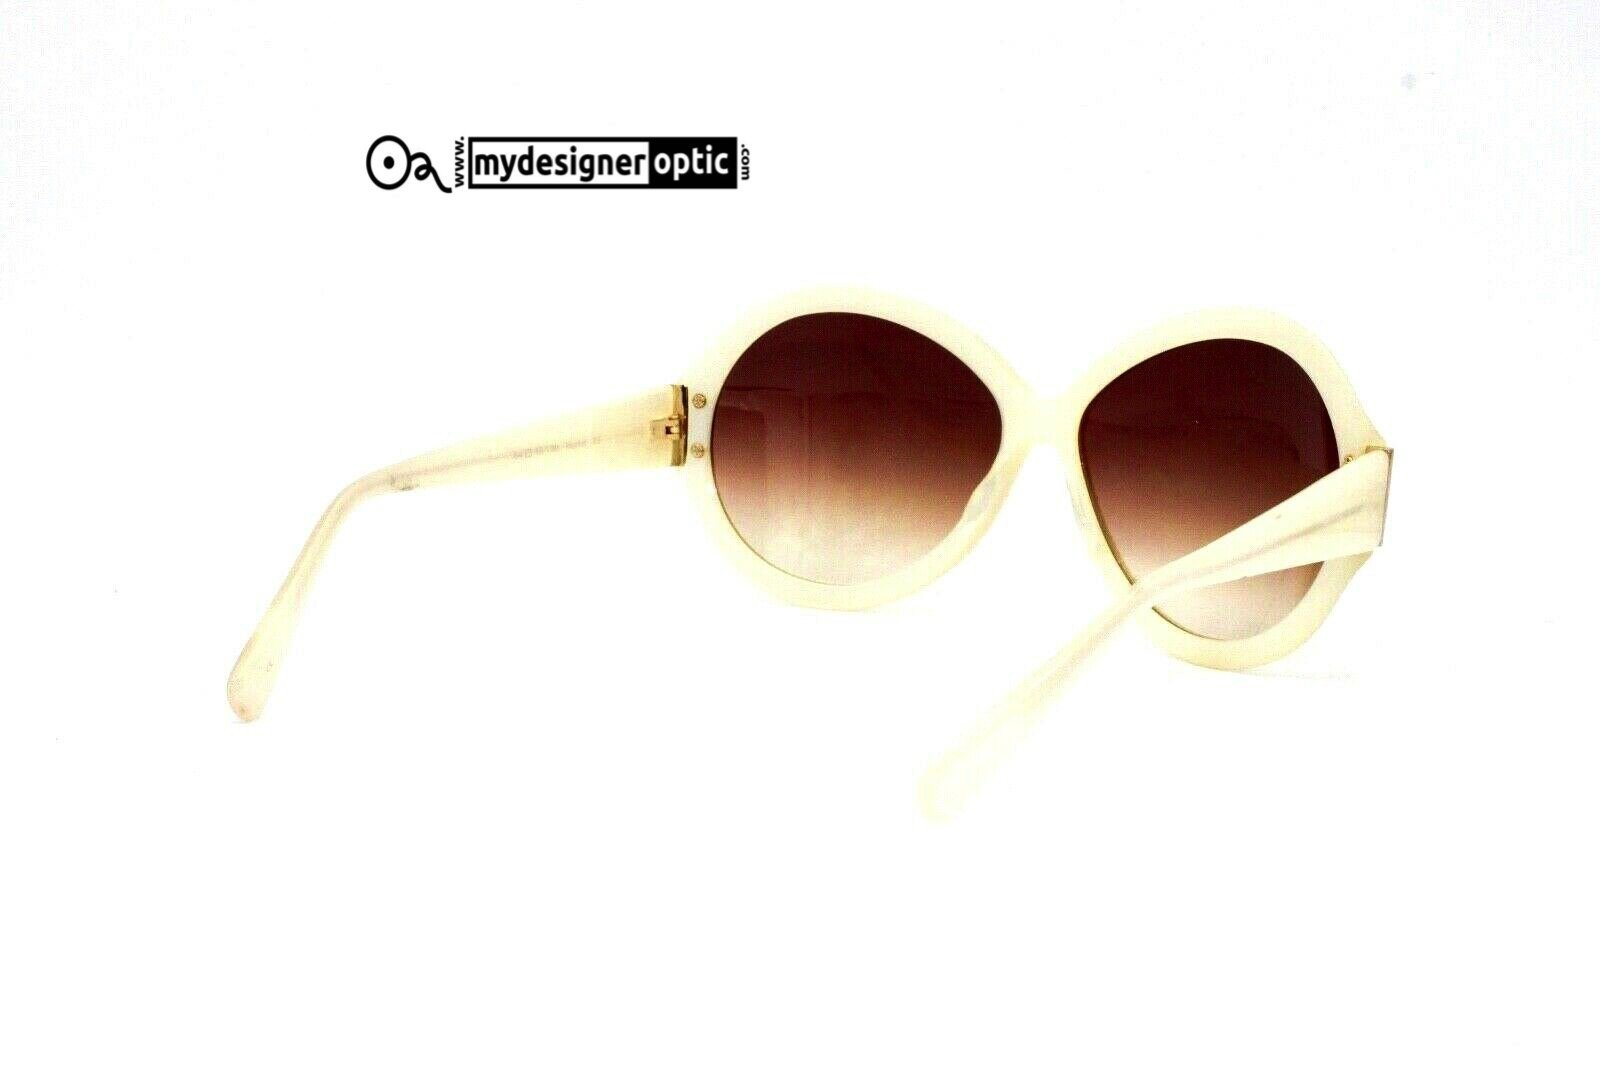 Oliver Peoples Sunglasses 64-15-130 Harlot IS Made in Japan - Mydesigneroptic